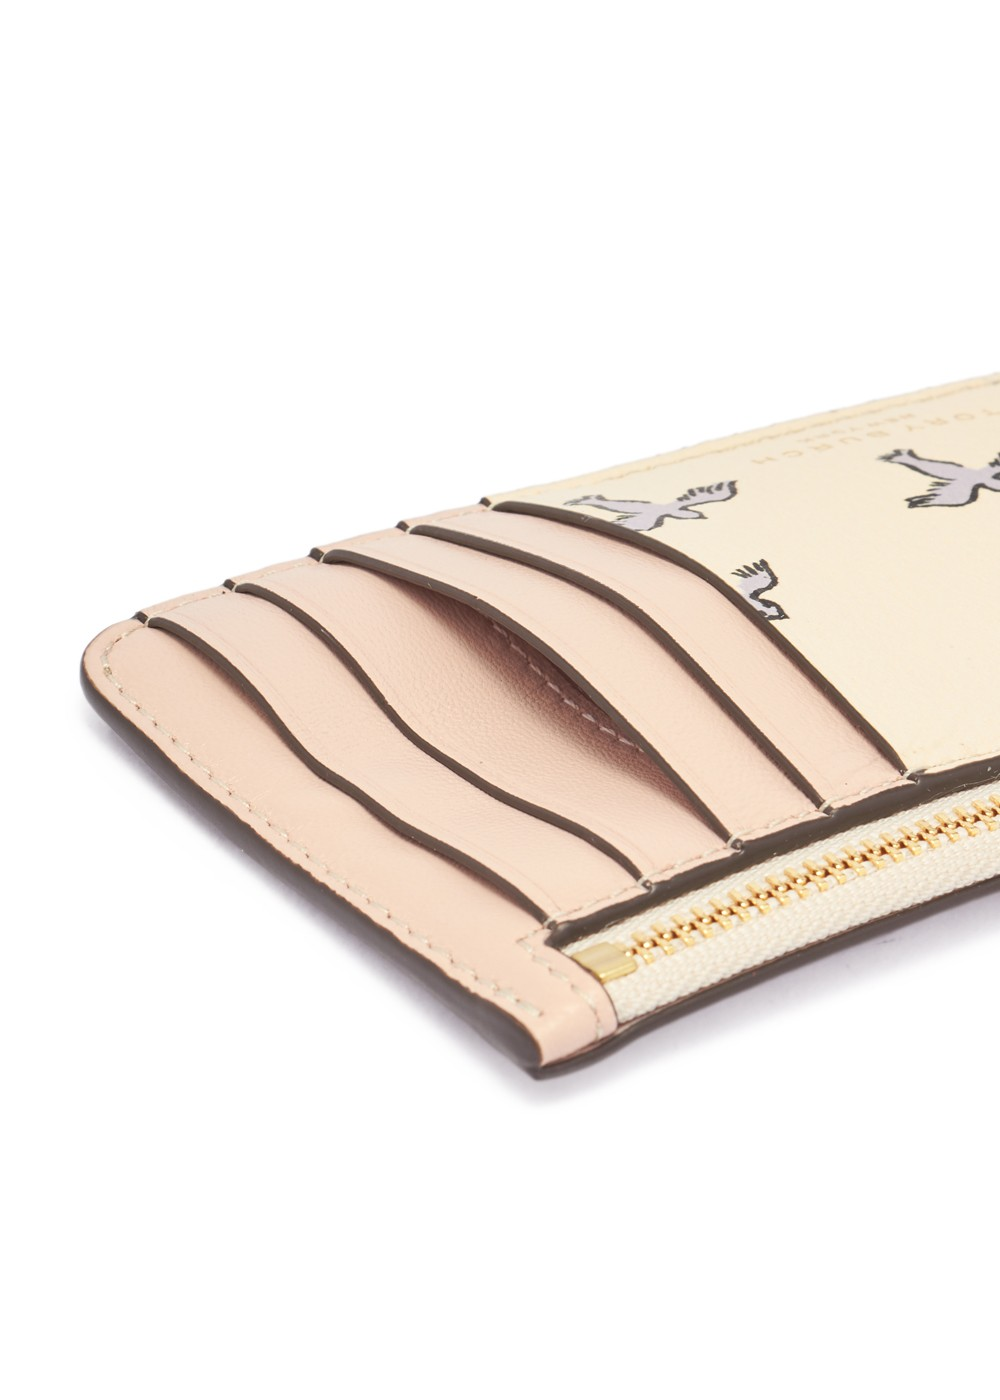 【最大47%OFF】PRINTED TASSEL ZIP CARD CASE|IVORY EARLY BIRD|カードケース|Tory Burch